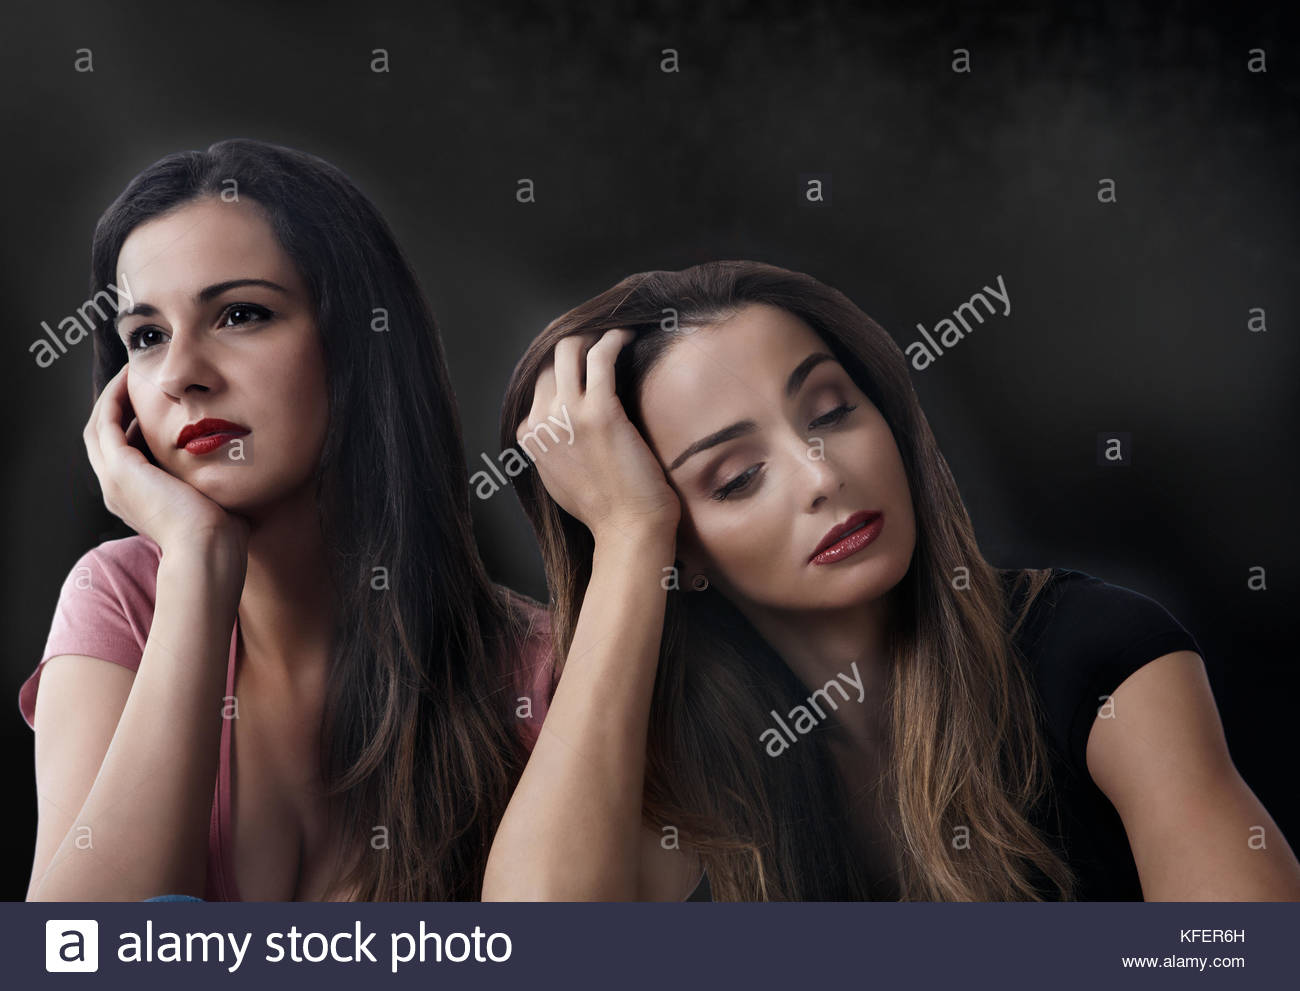 Two sad worrying women, holding head on hands - Stock Image